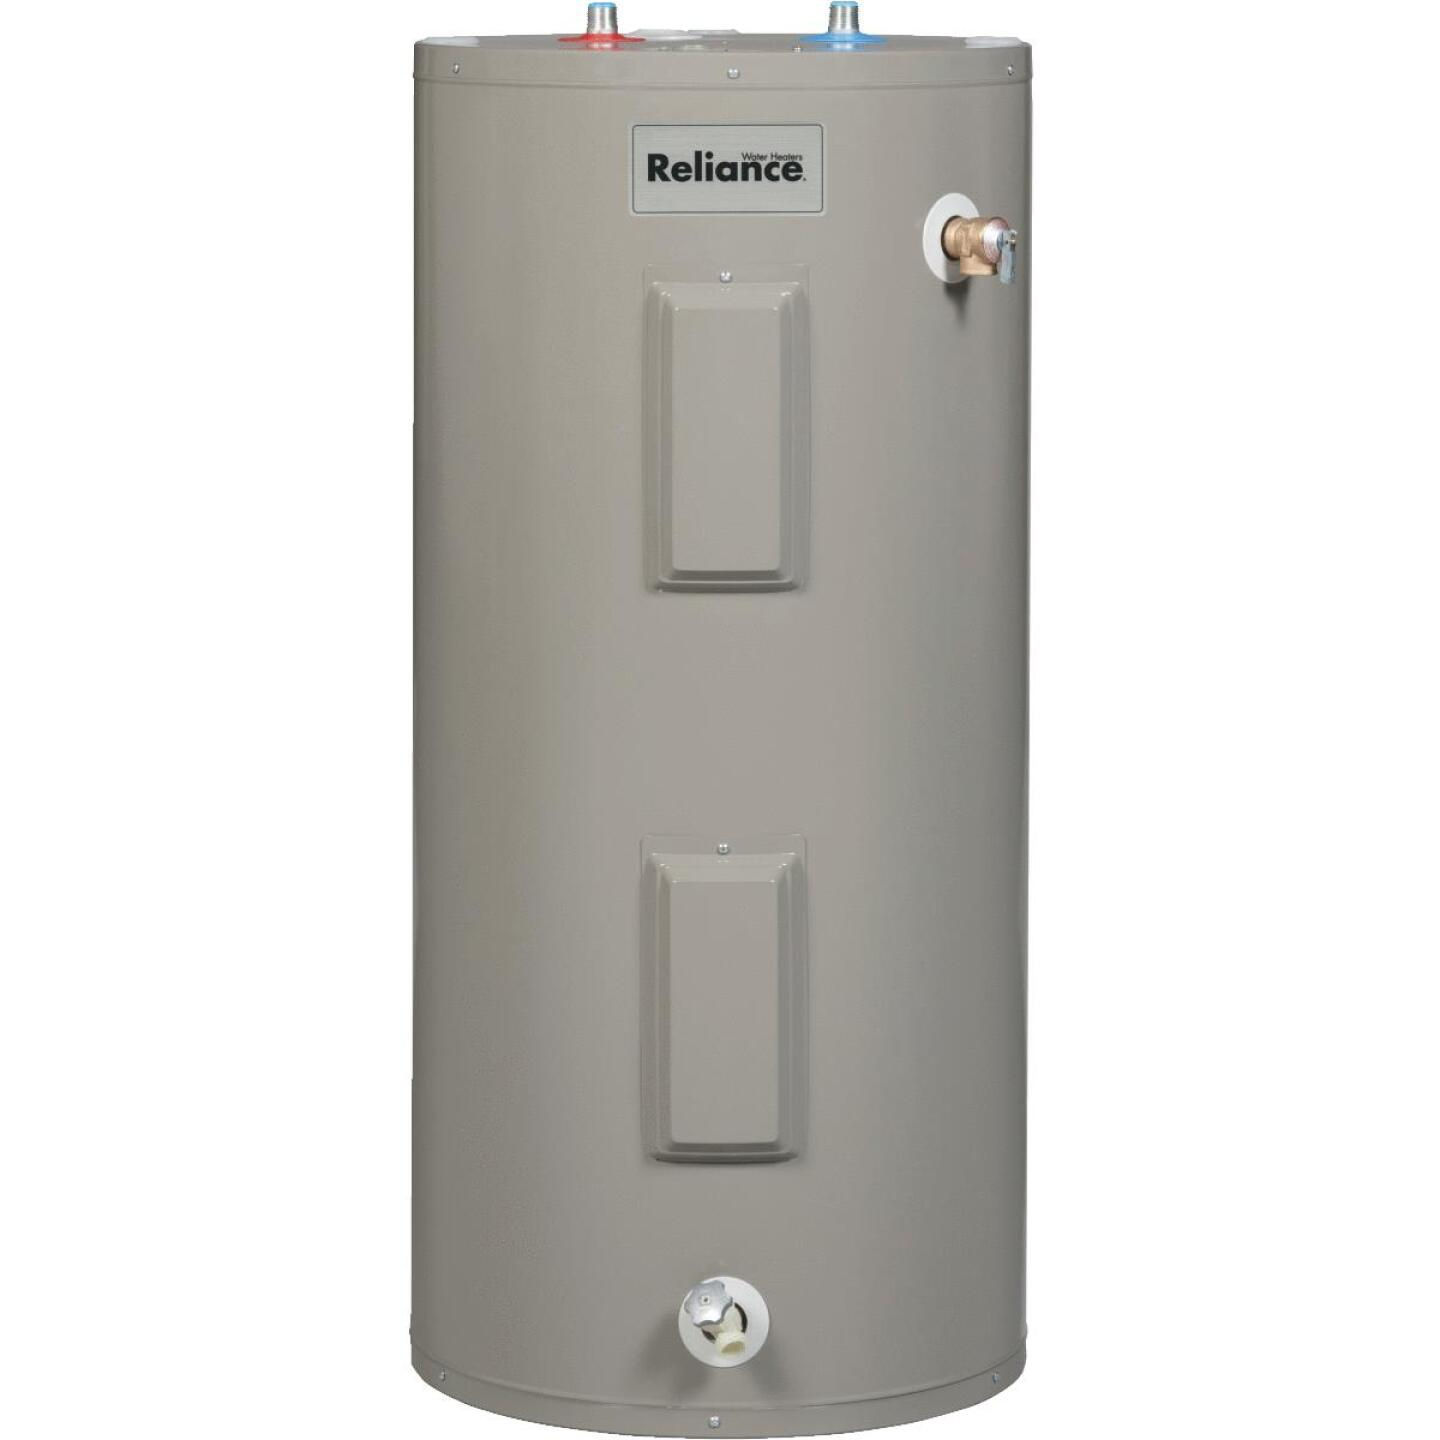 Reliance 40 Gal. Short 6yr 4500/4500W Elements Electric Water Heater Image 1